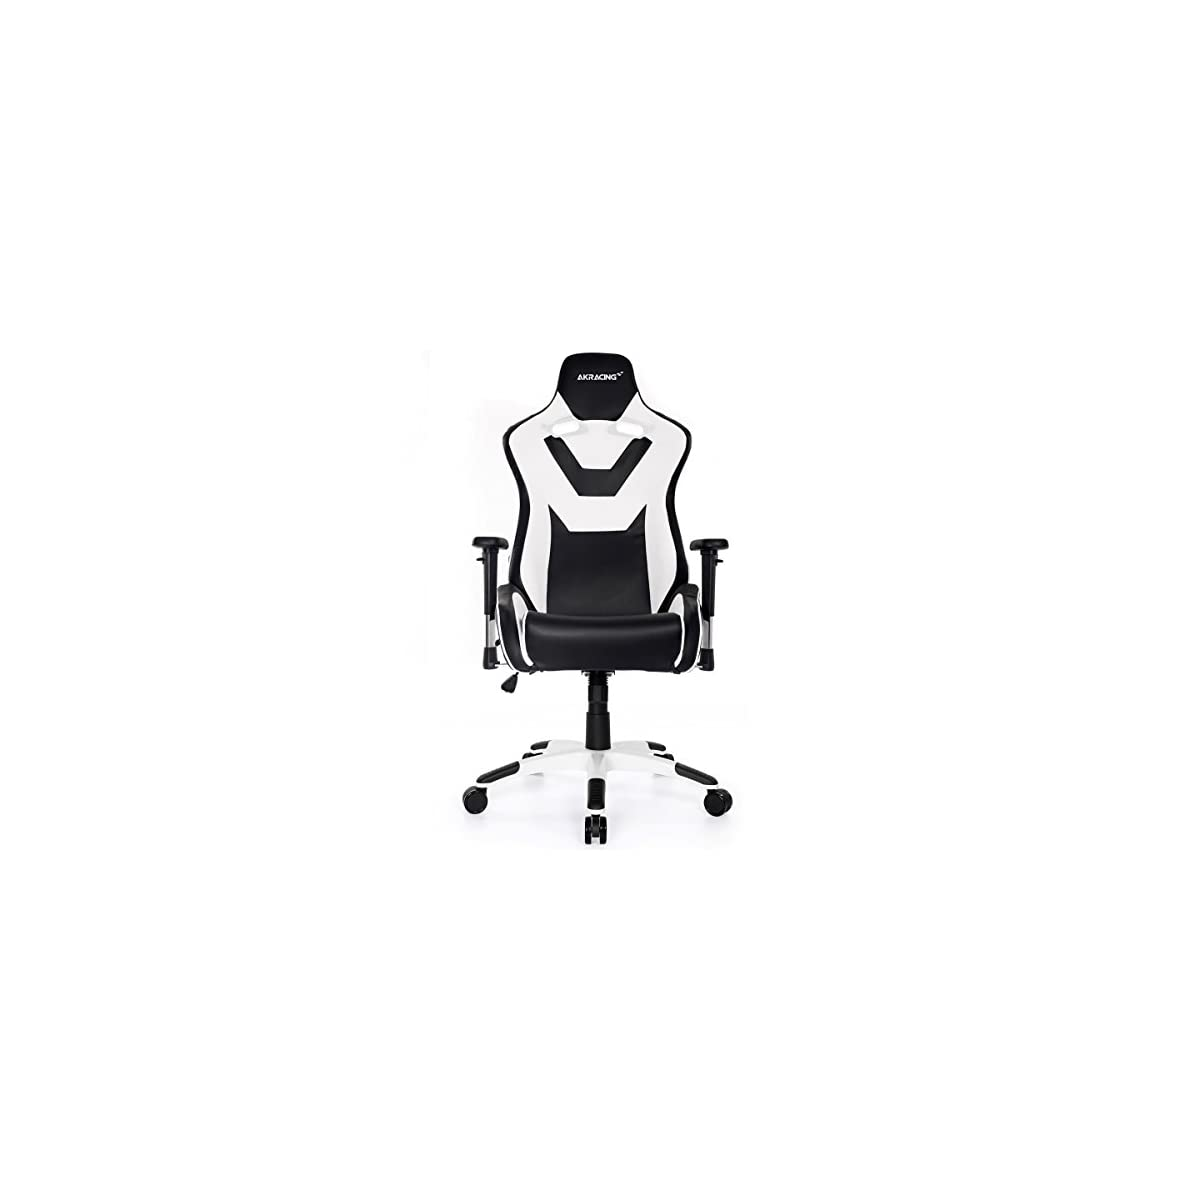 41OGY0mycOL. SS1200  - AKRacing CP - AK-CP-BW - Silla Gaming, Color Negro/Blanco